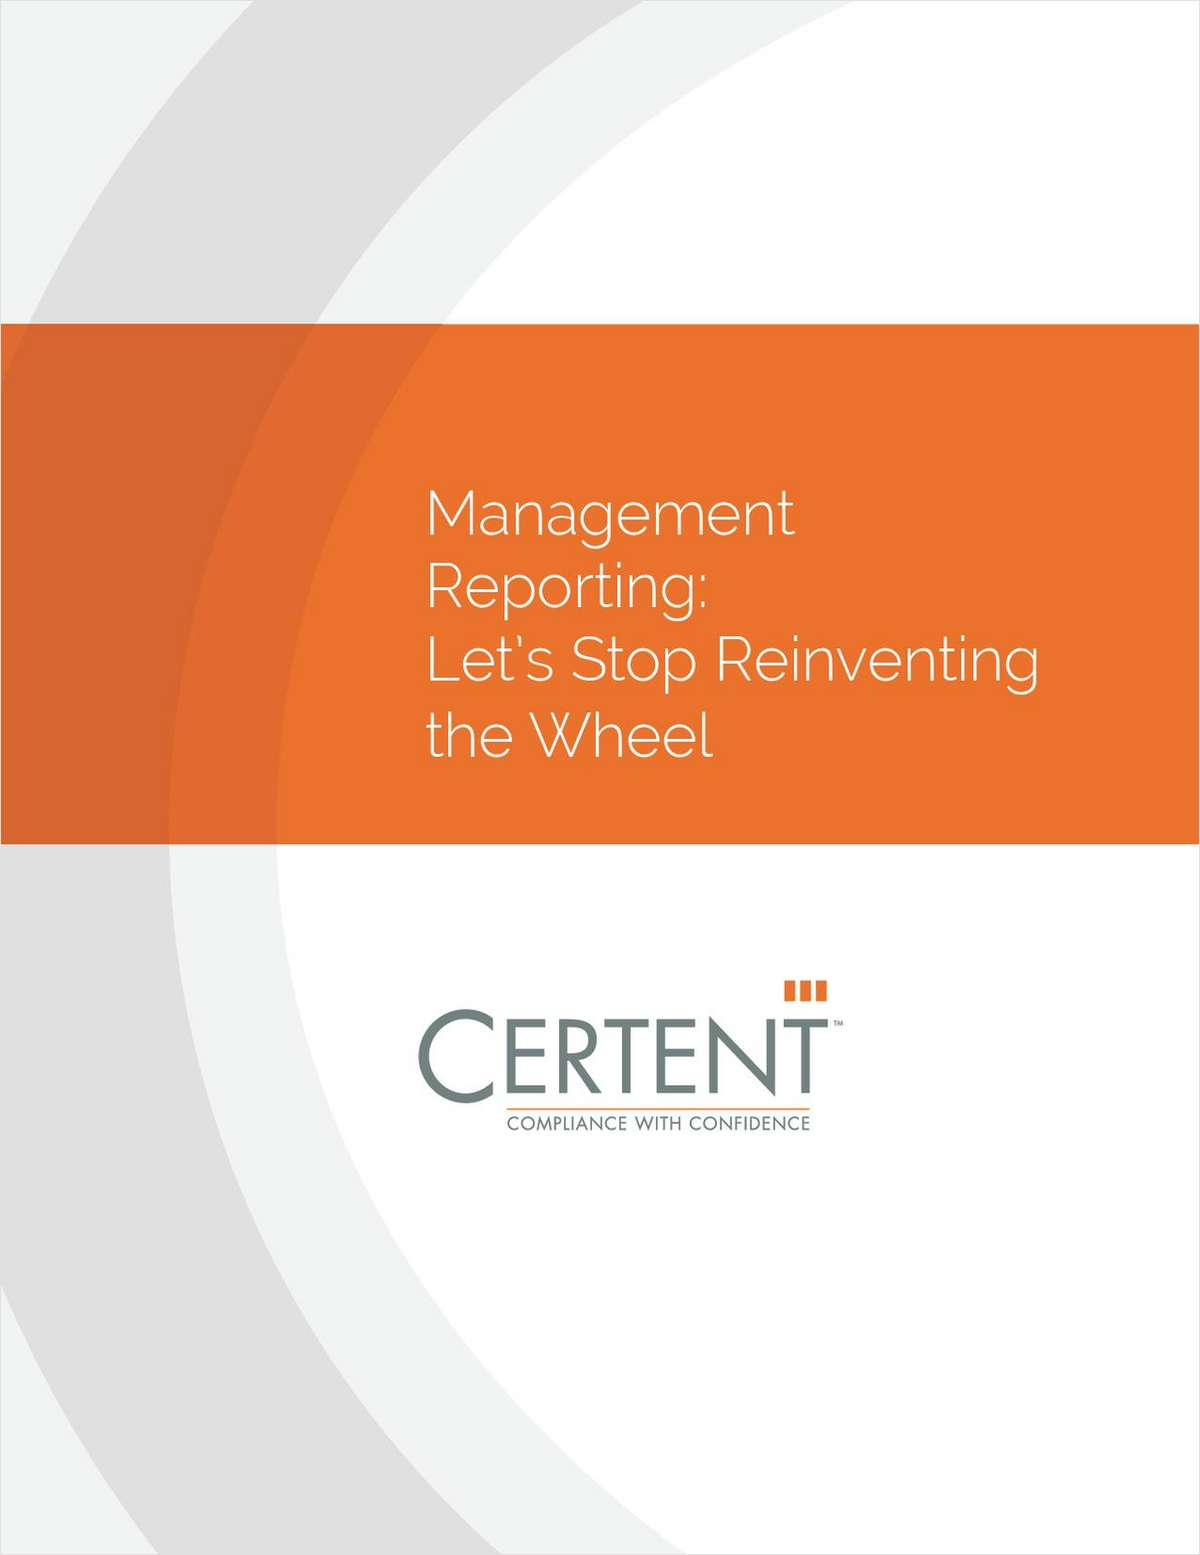 Management Reporting: Let's Stop Reinventing the Wheel